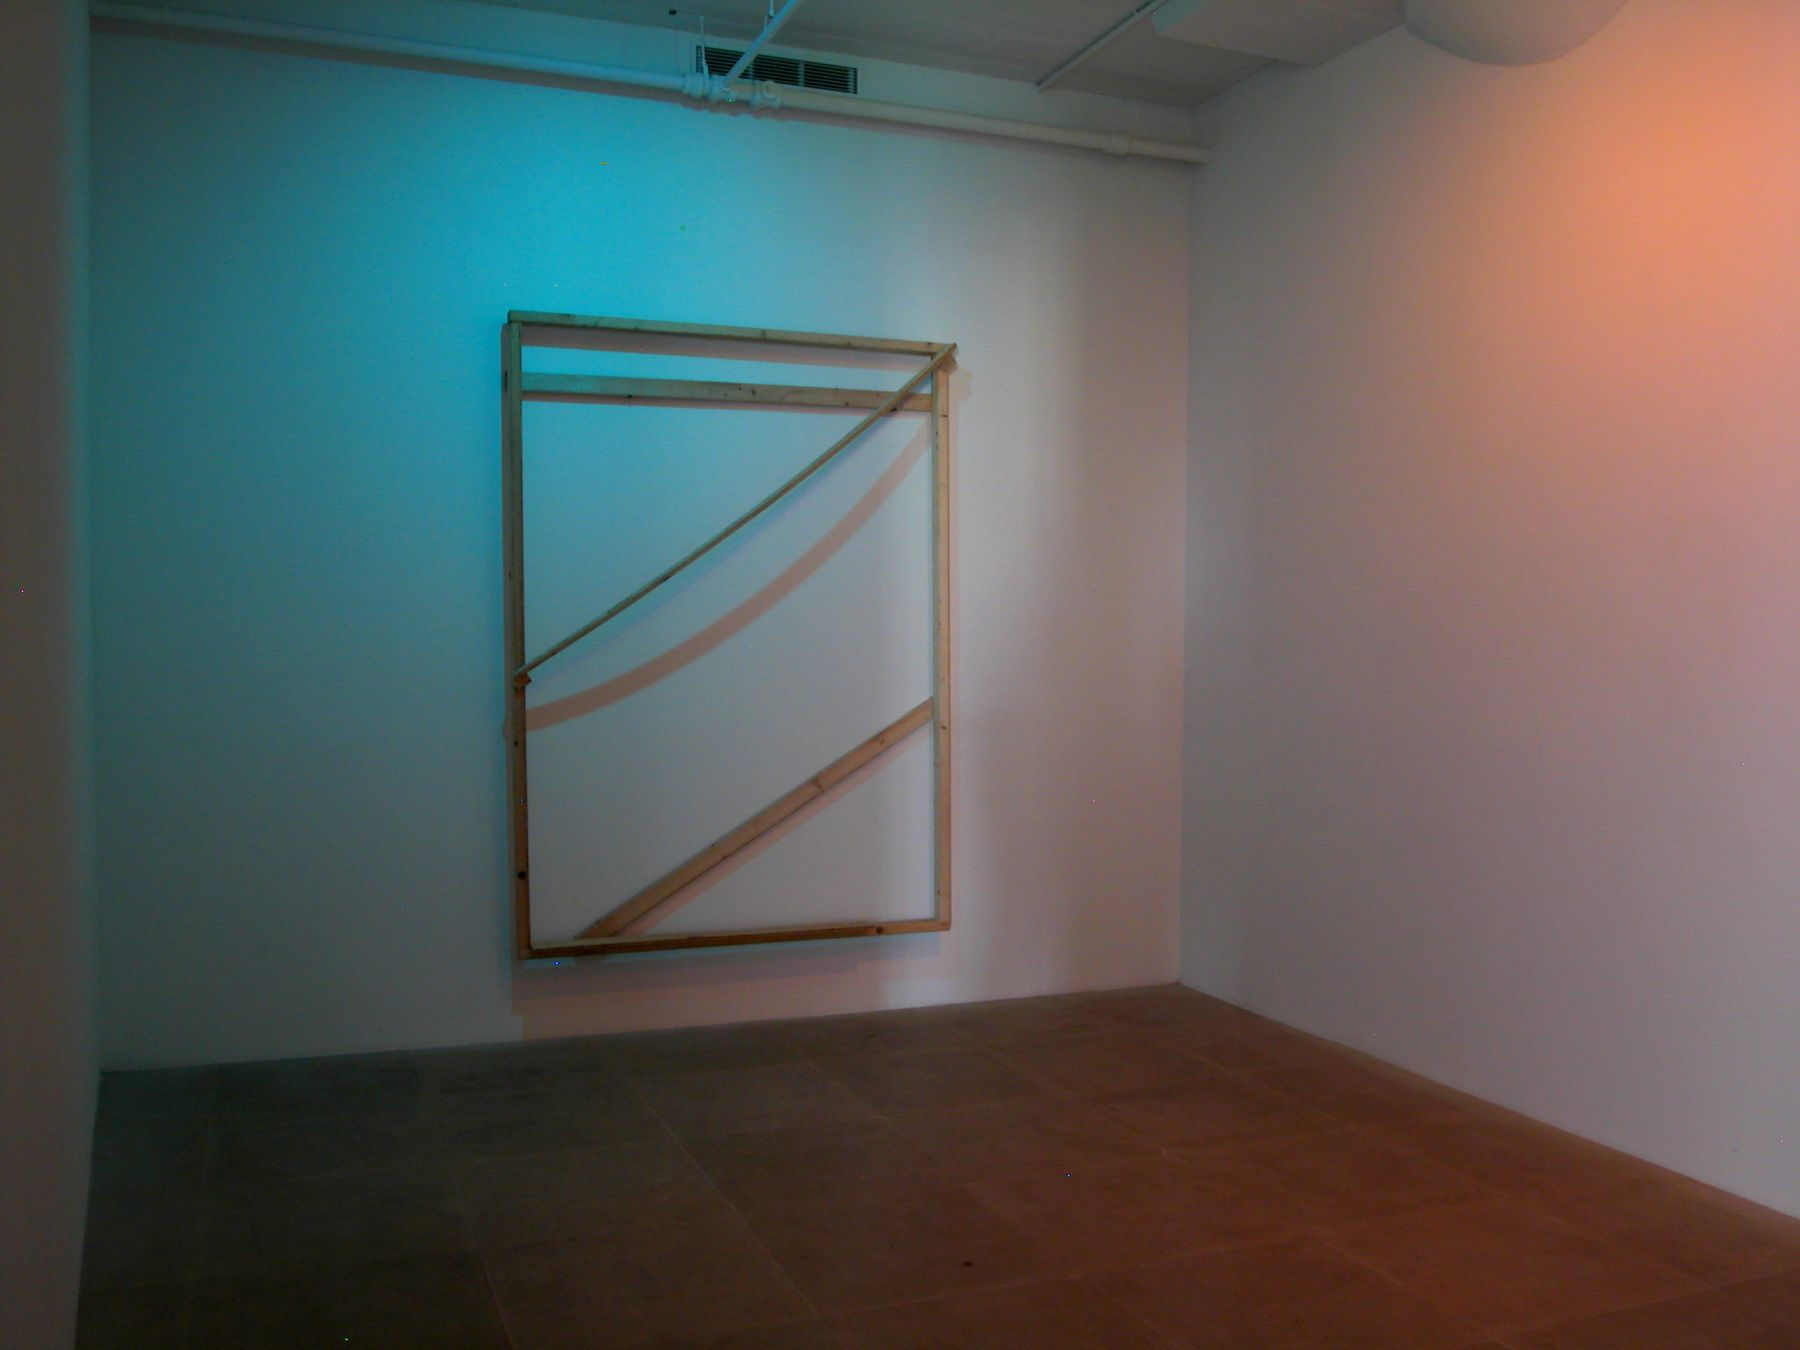 Its Origins Justify its Oranges, 2008, Wood, colored lights, 85 x 64 x 11 inches